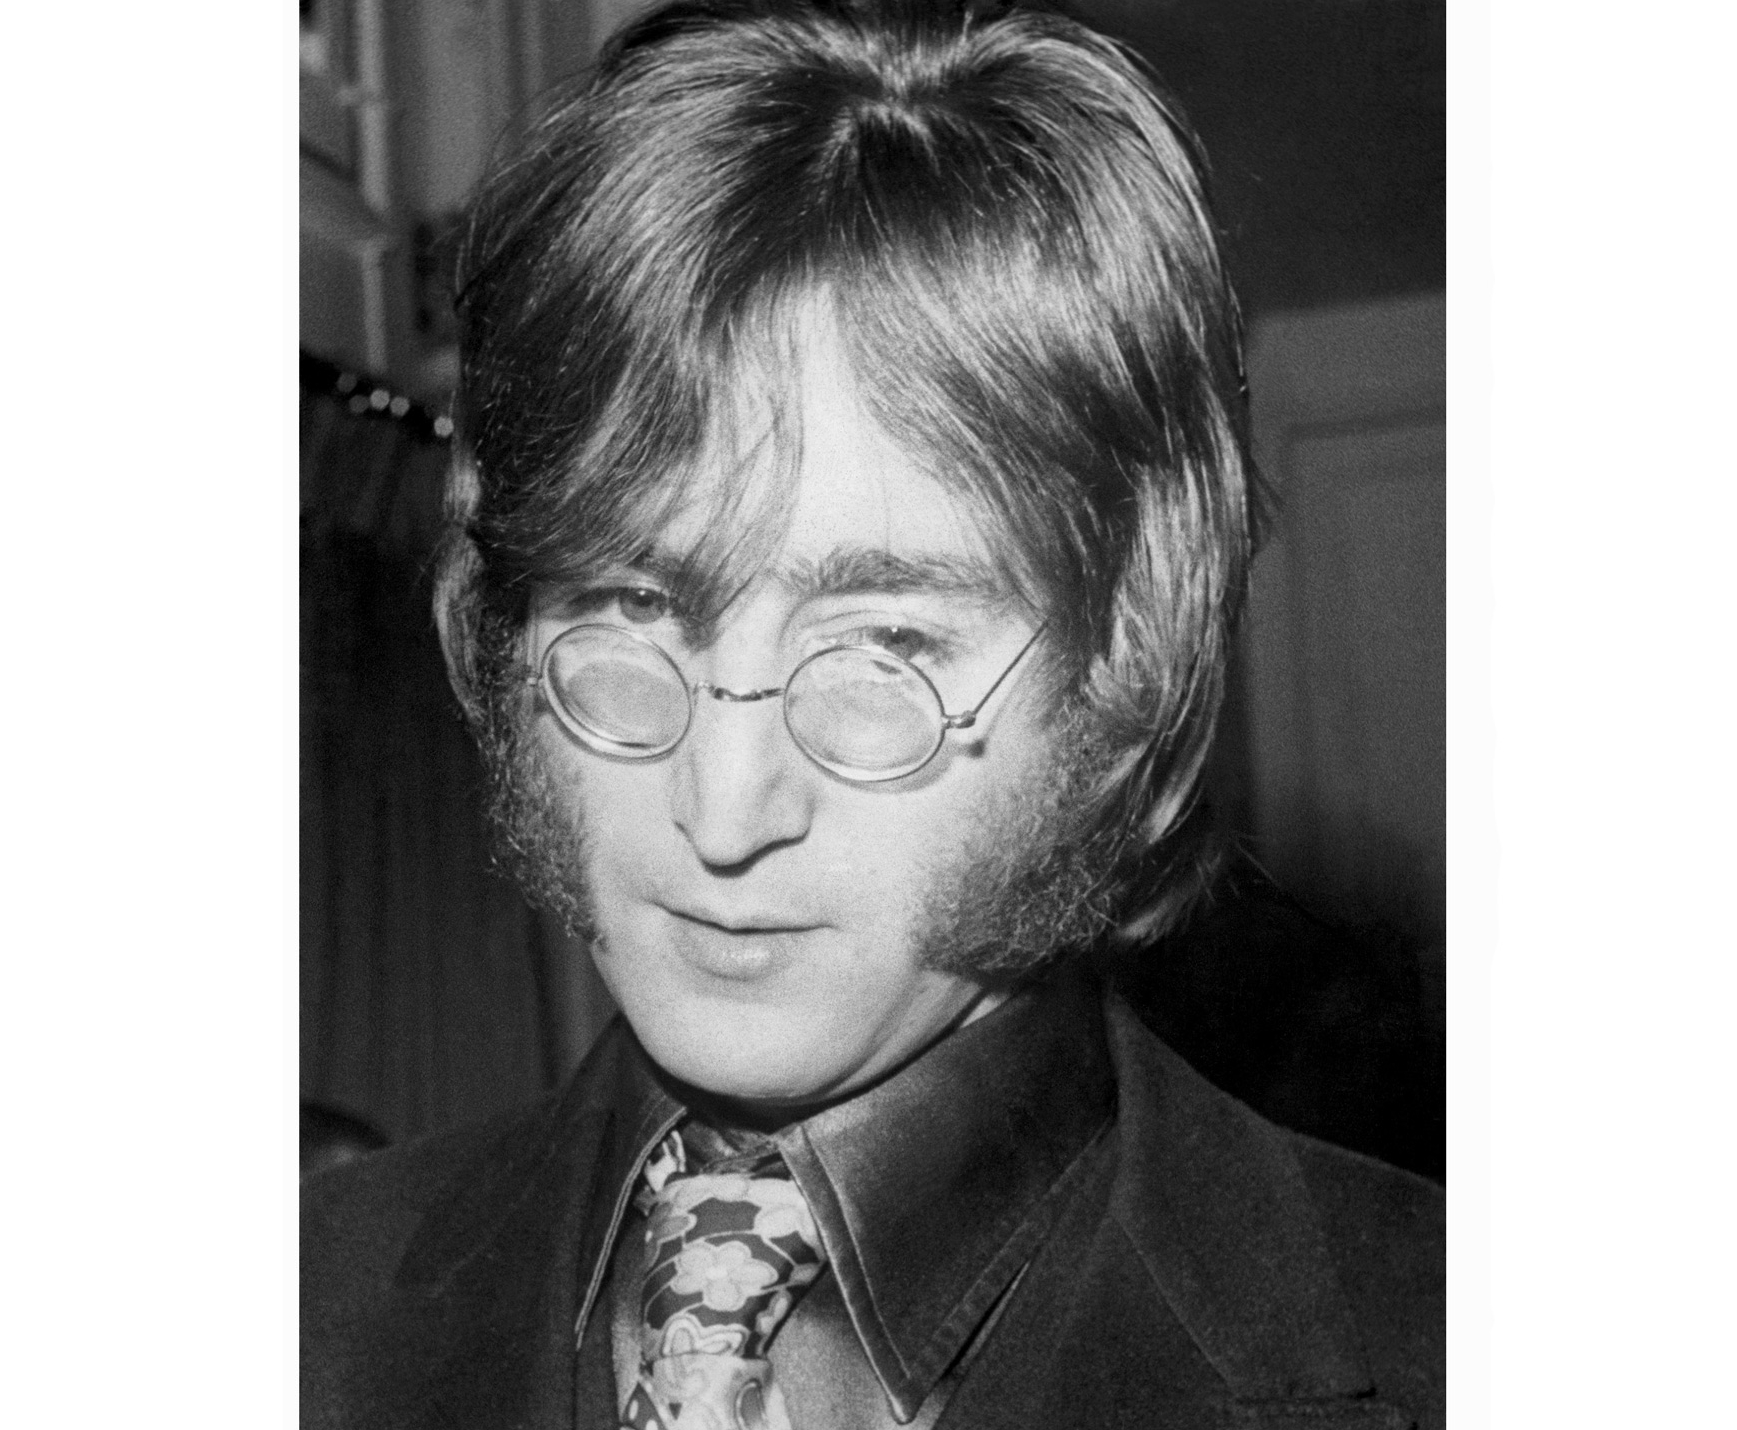 John Lennon - Hyde Park Hotel, London